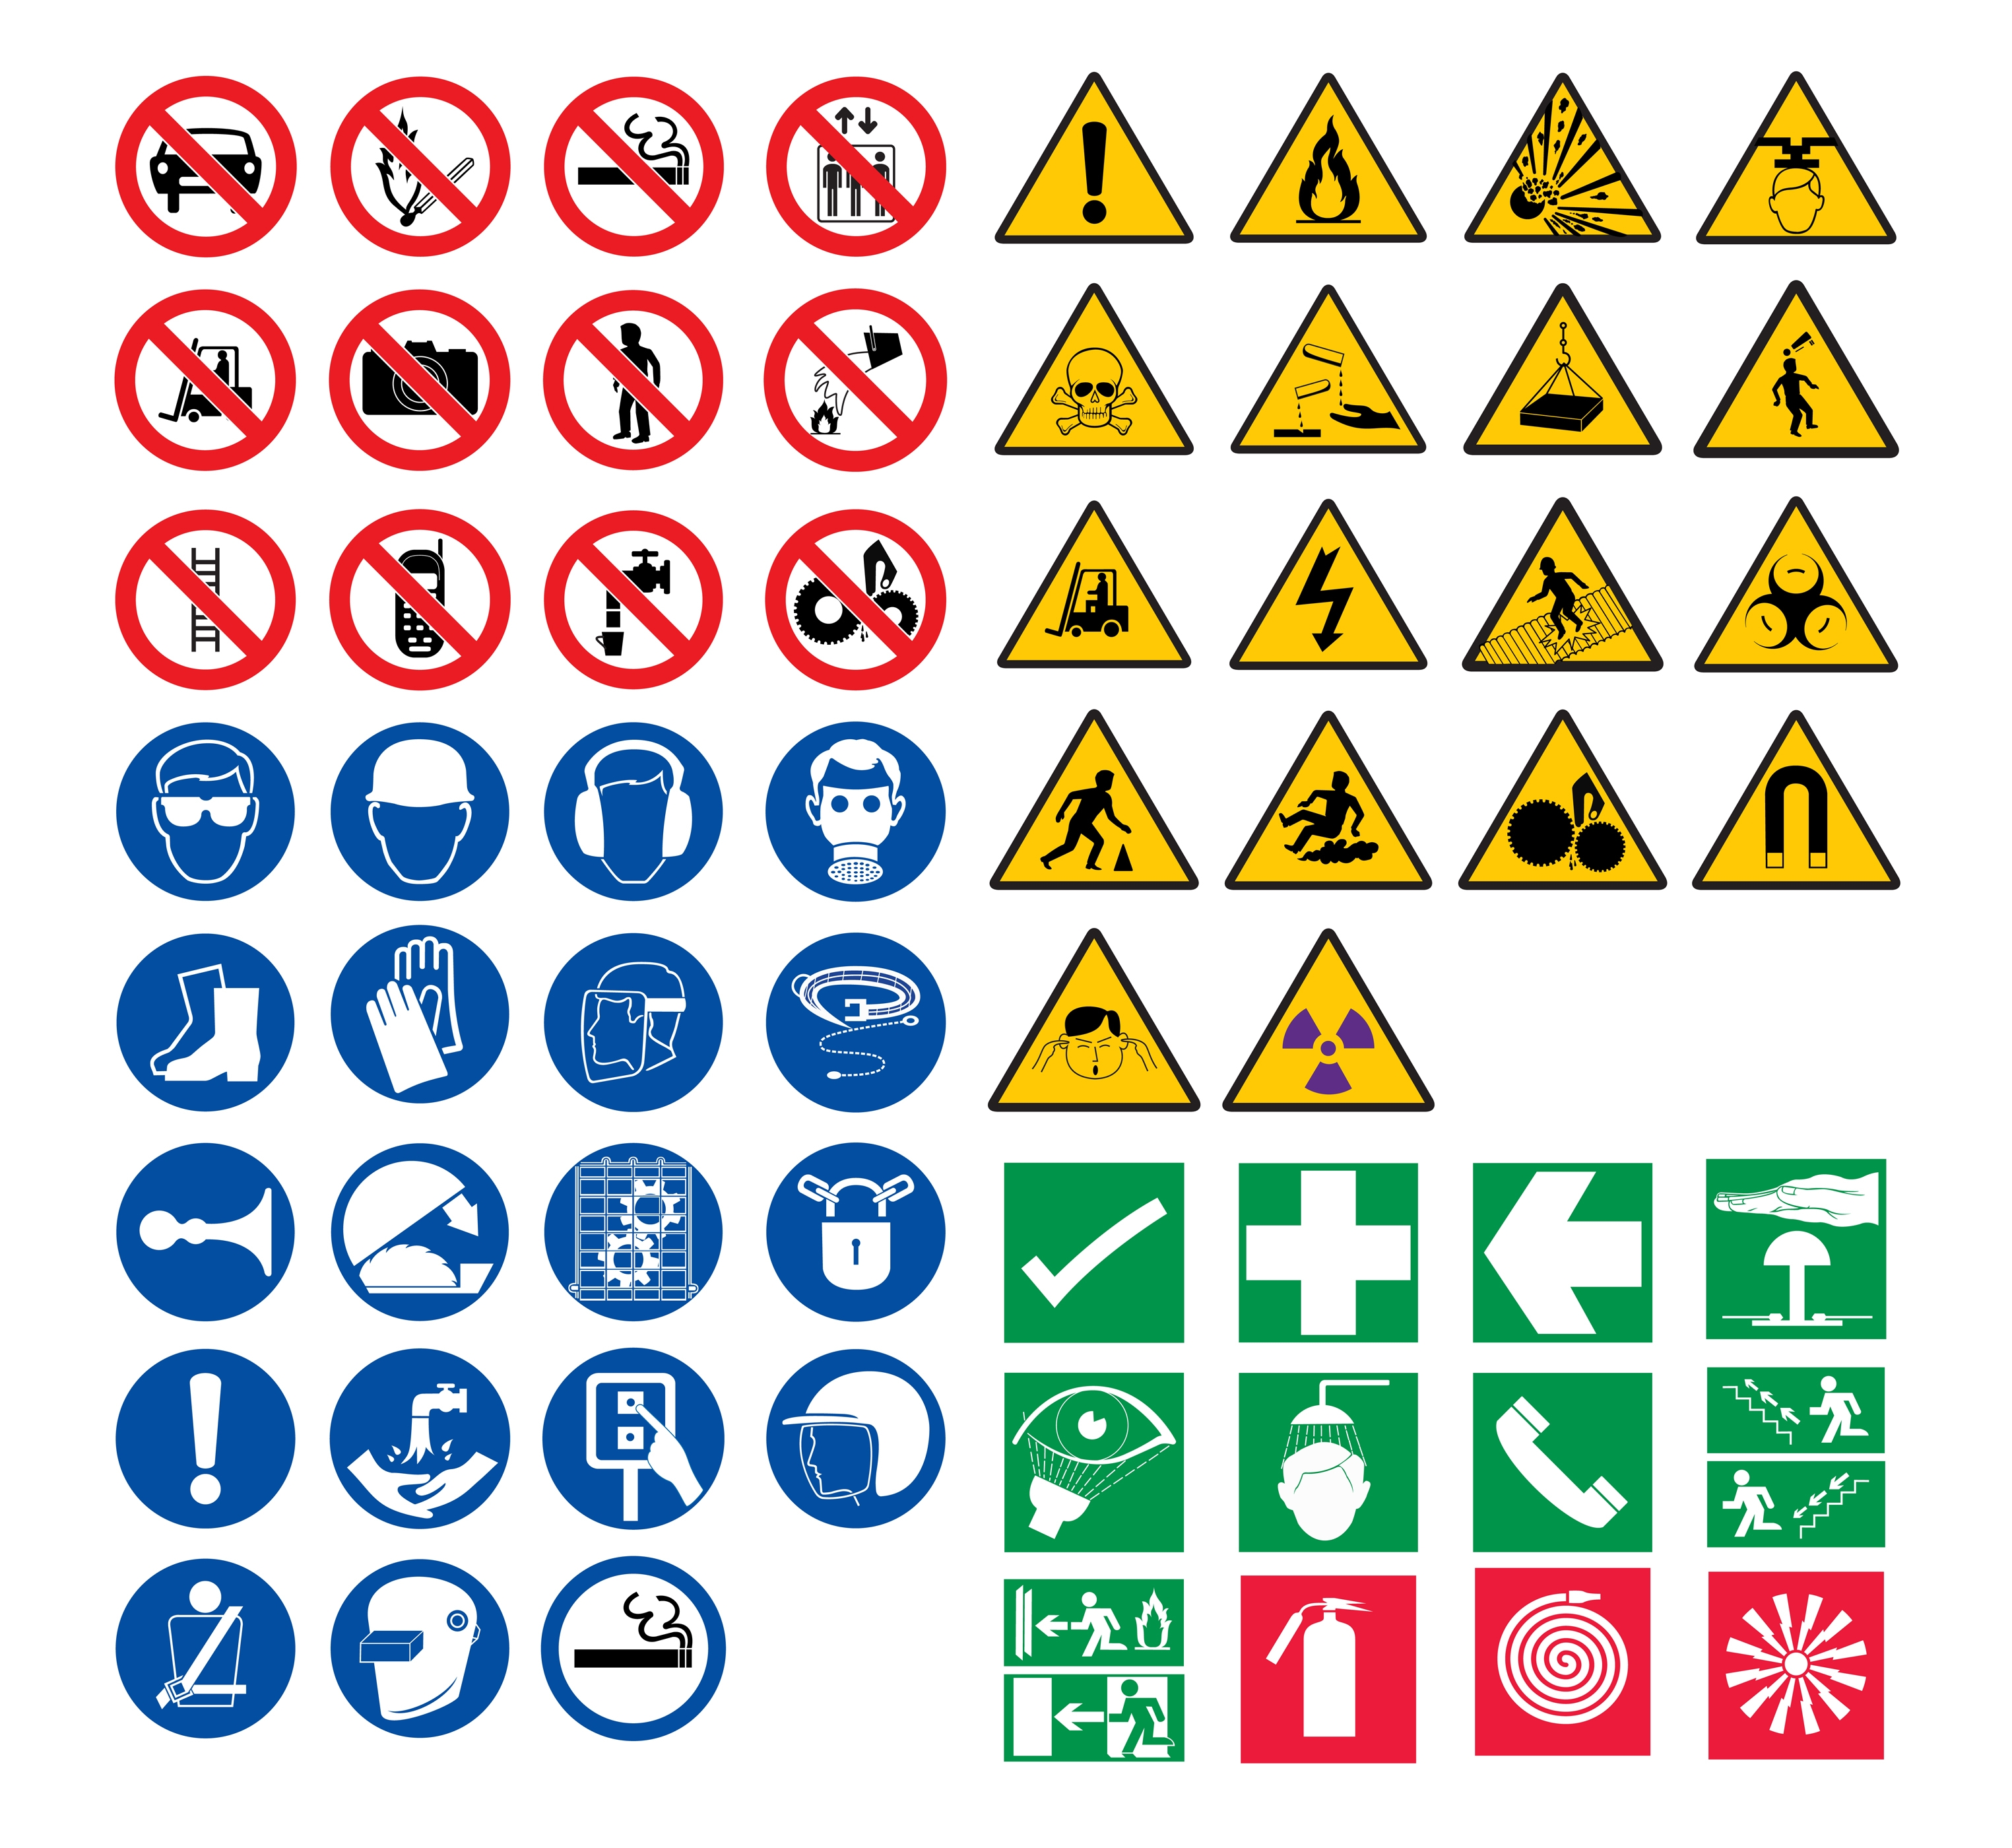 Occupational Health And Safety Signs And Symbols